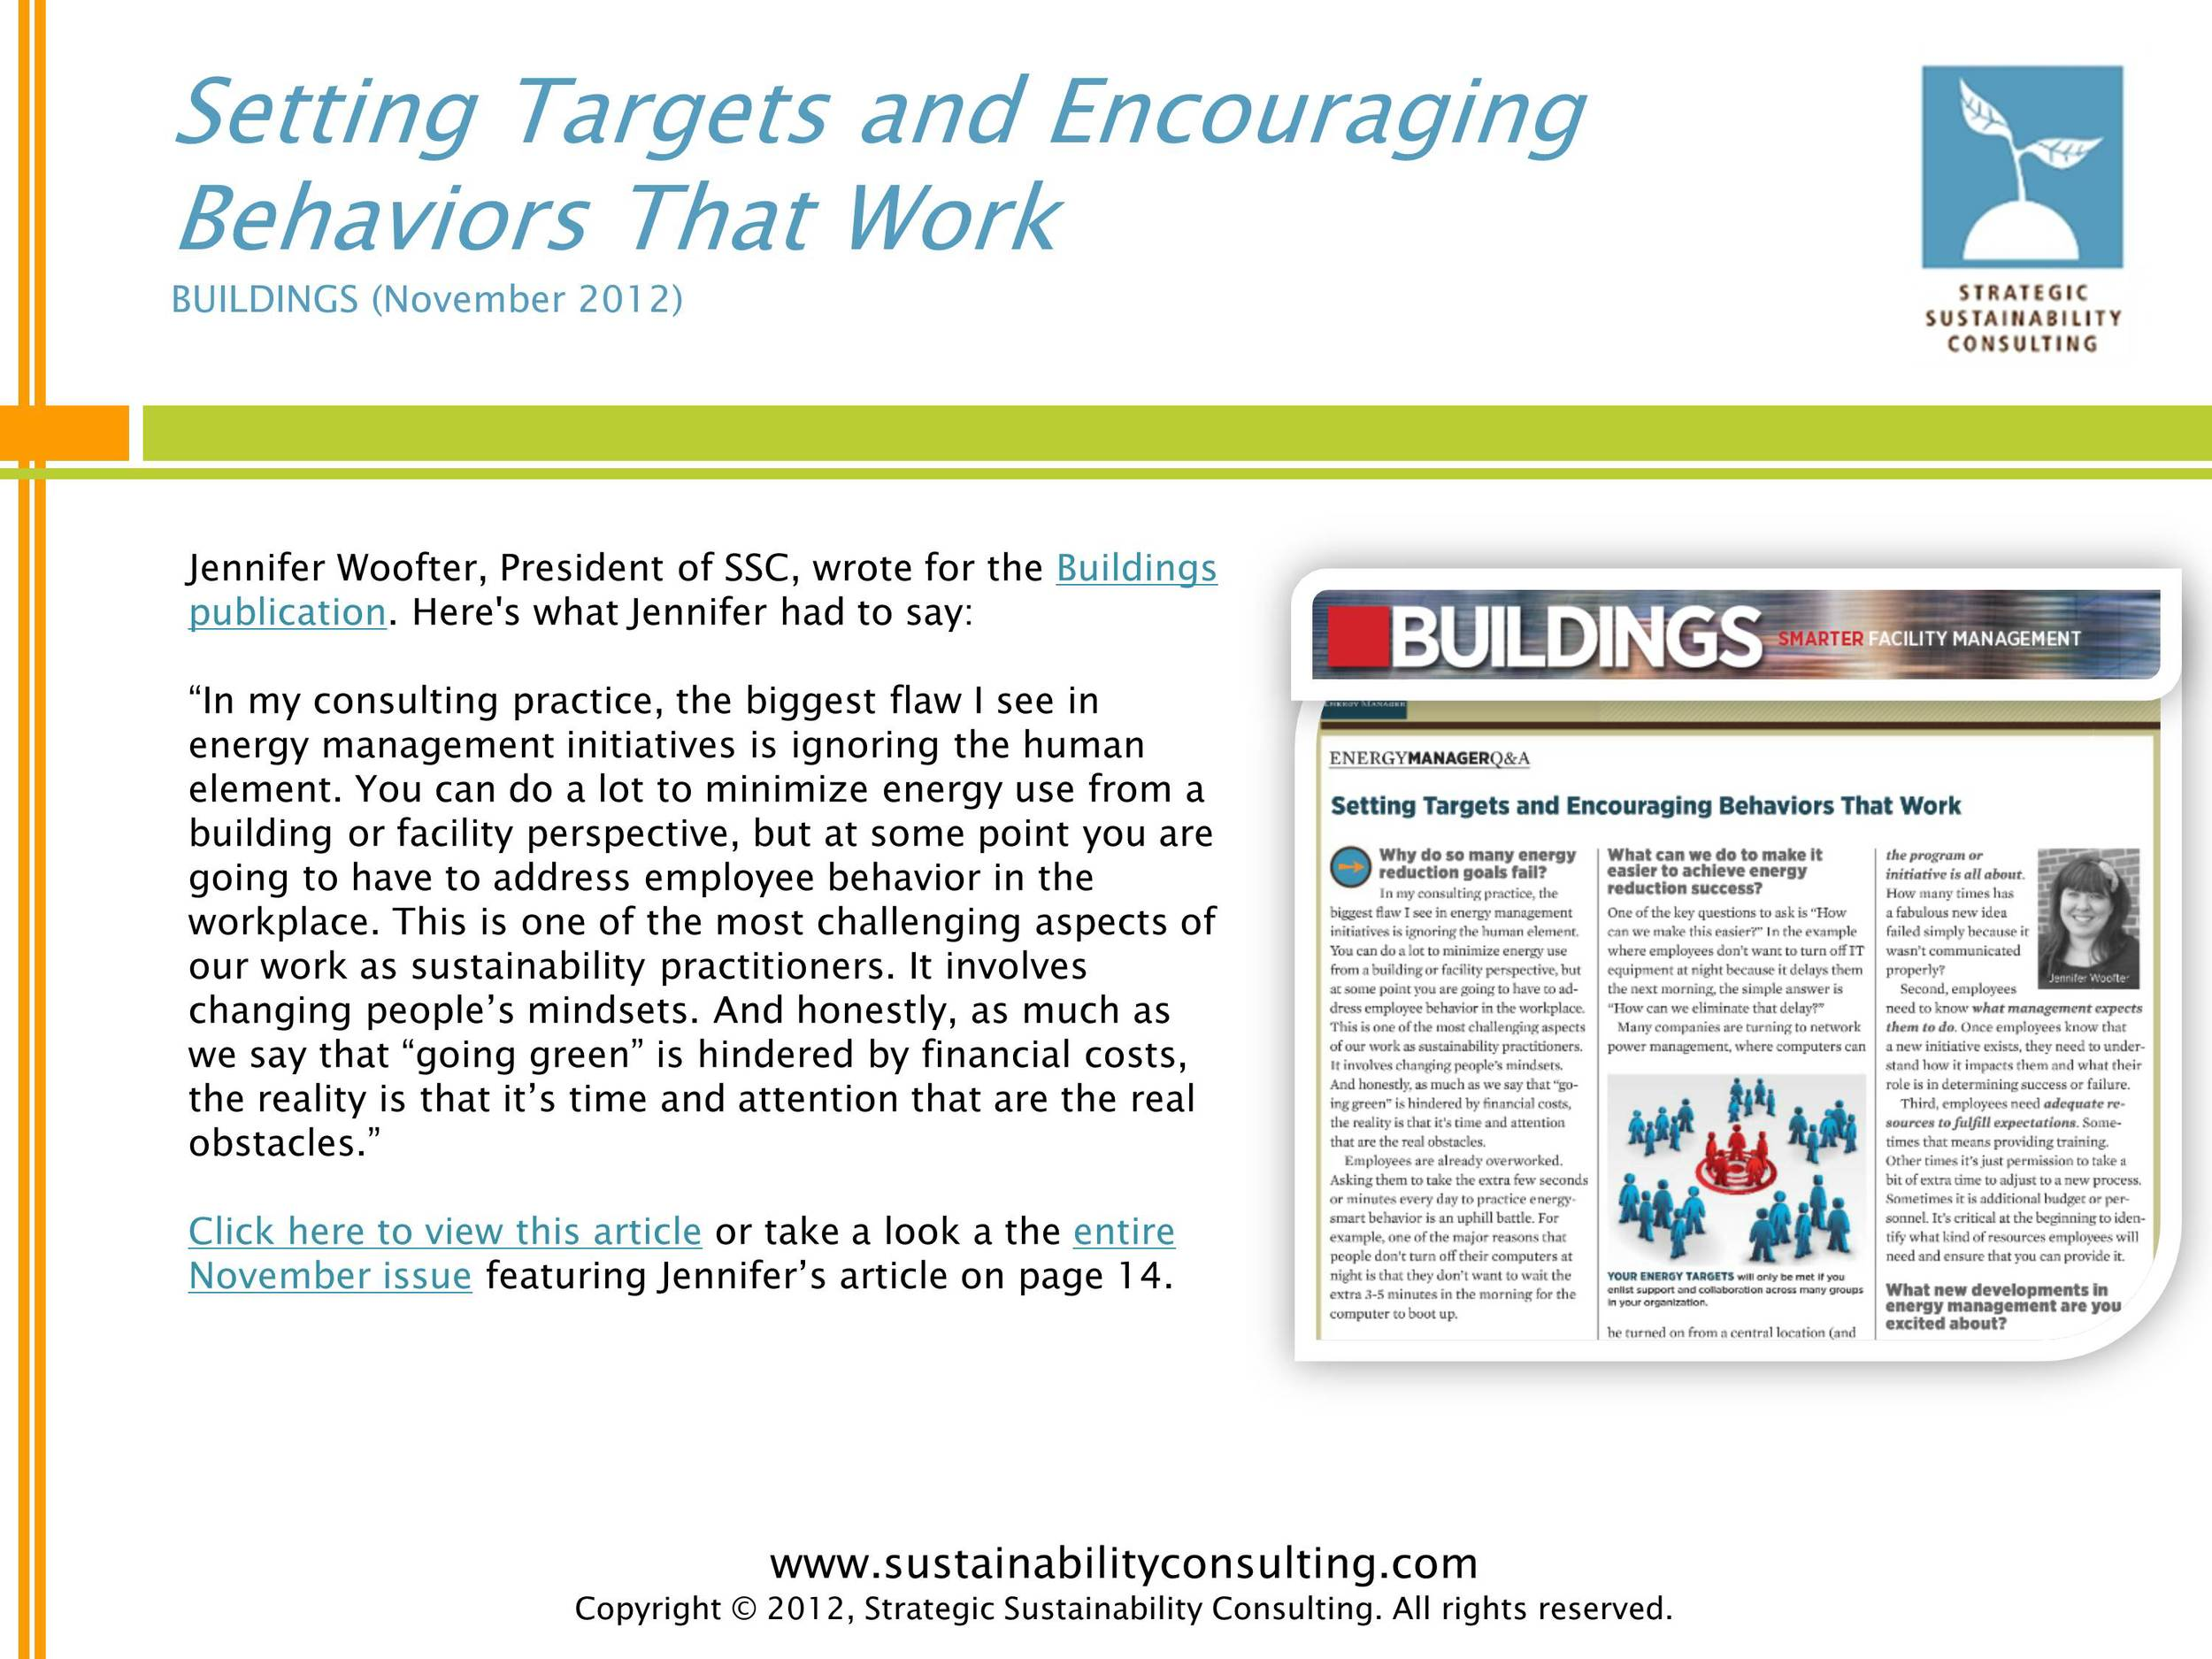 Setting Targets and Encouraging Behaviors That Work